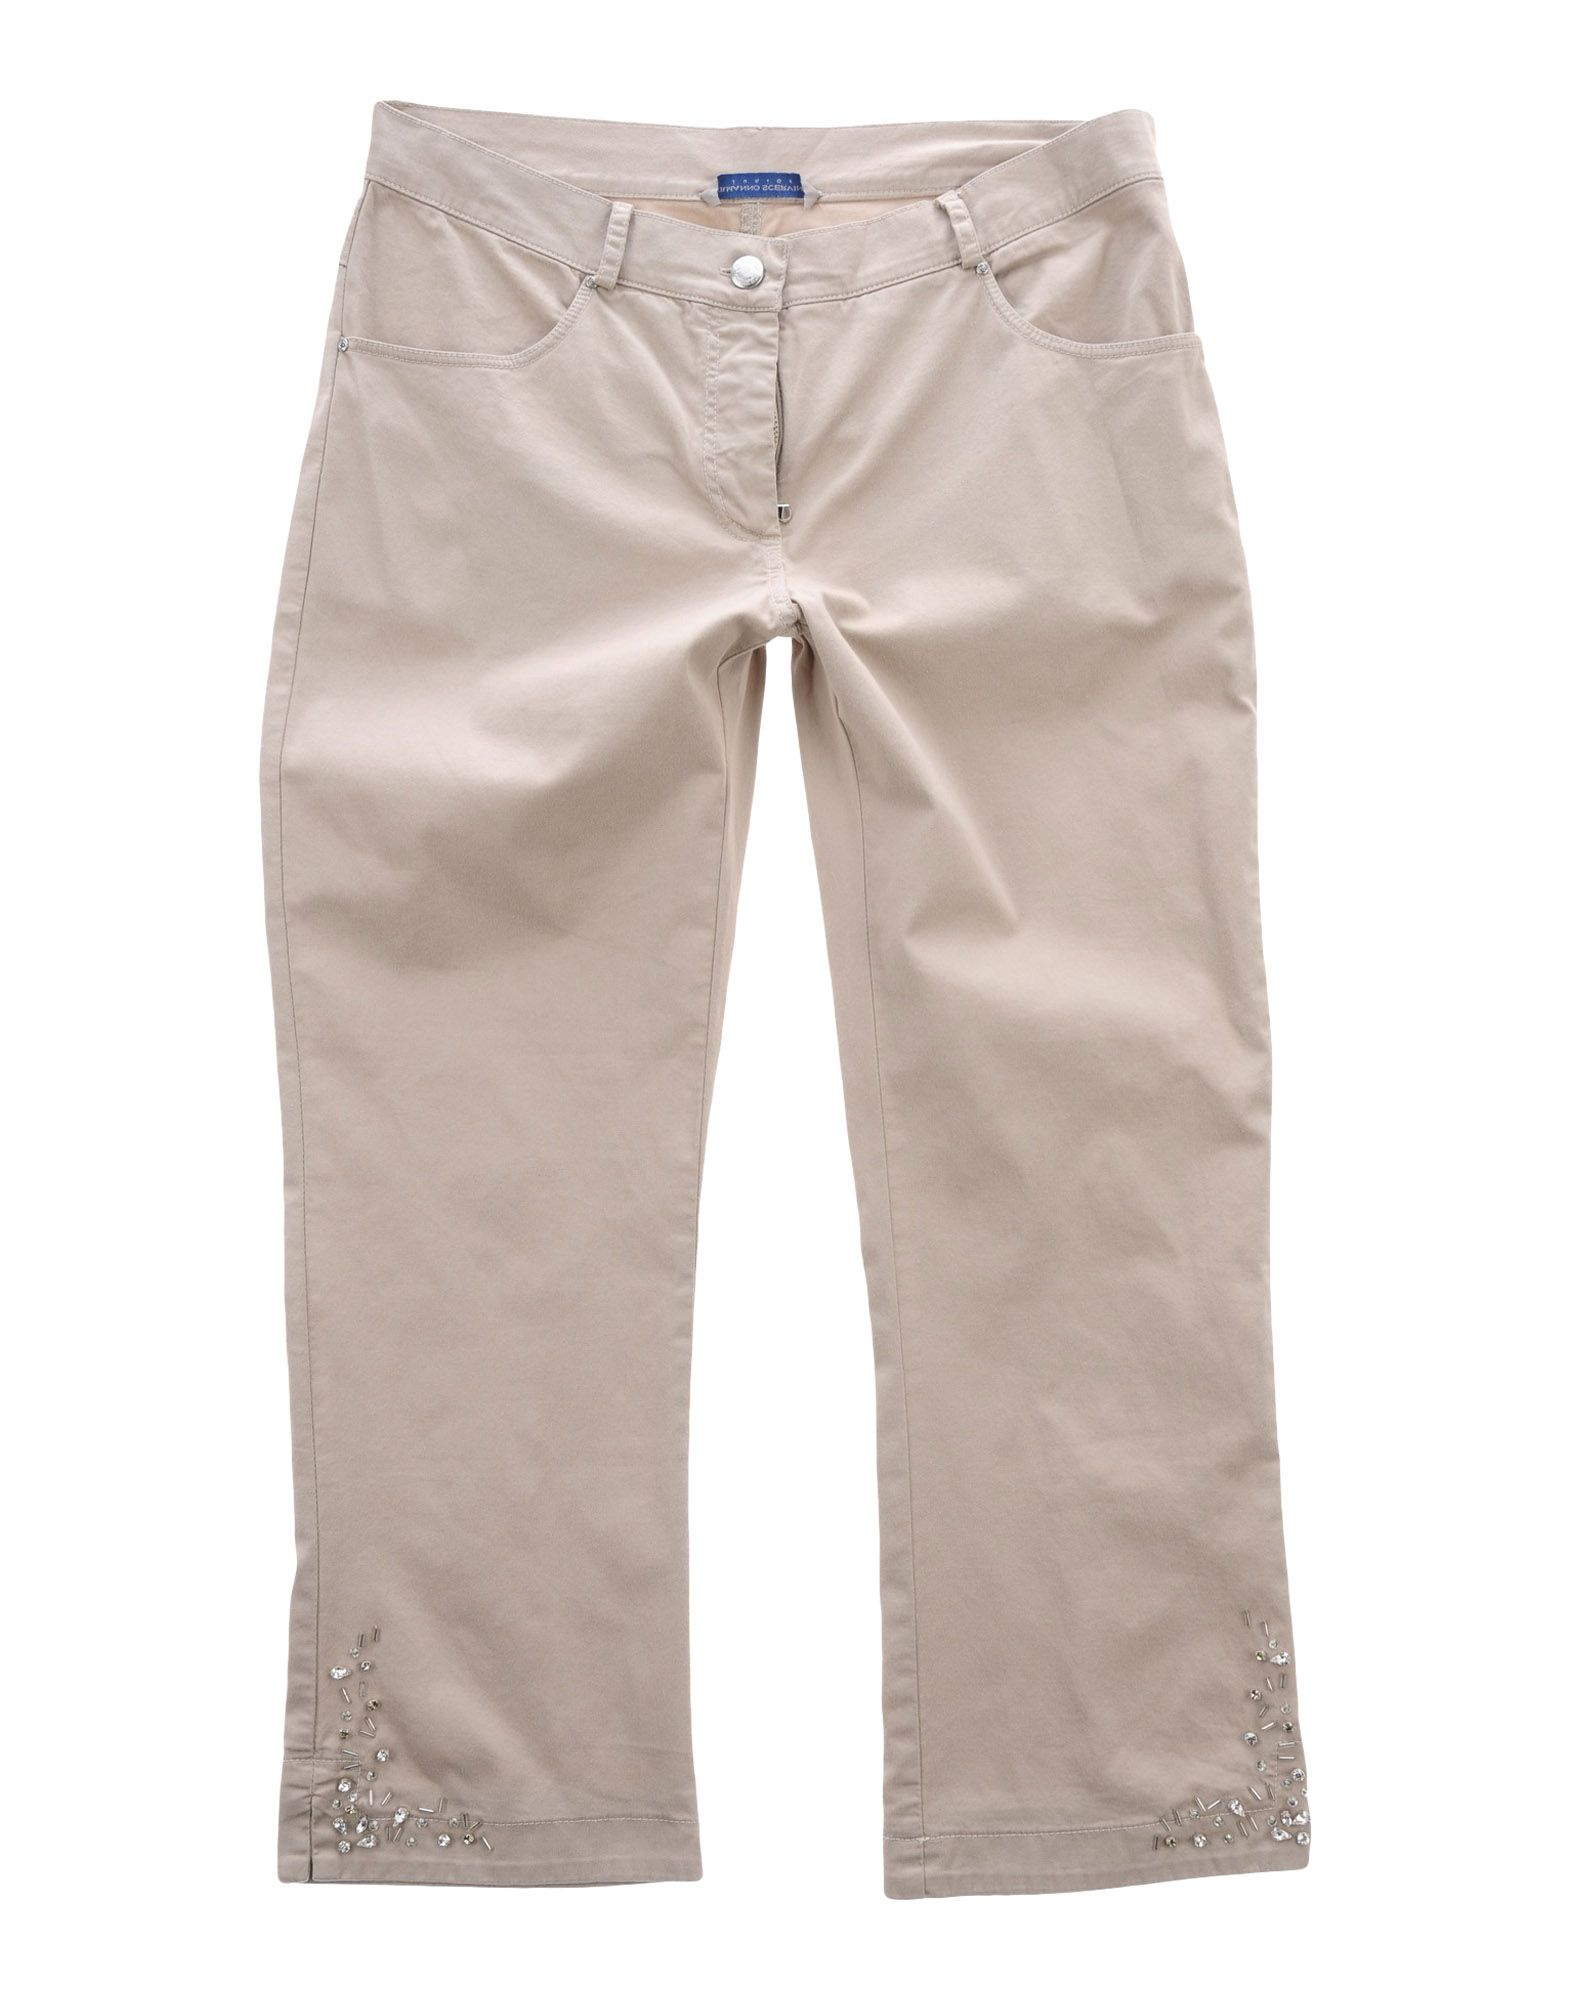 ERMANNO SCERVINO JUNIOR Casual Pants in Beige